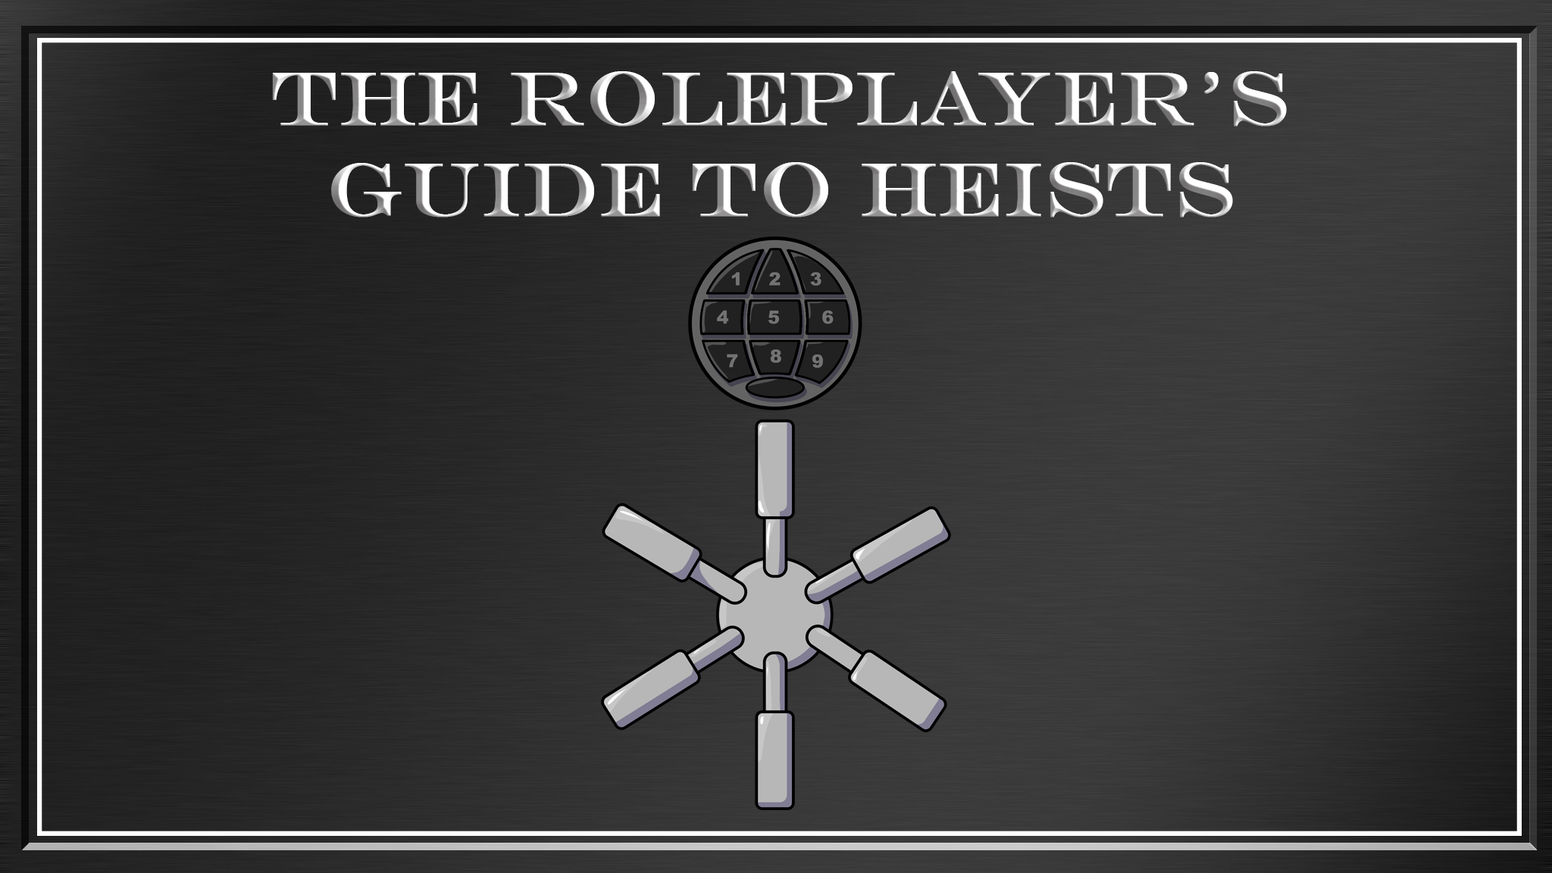 The Roleplayer's Guide To Heists by San Jenaro Co-Op